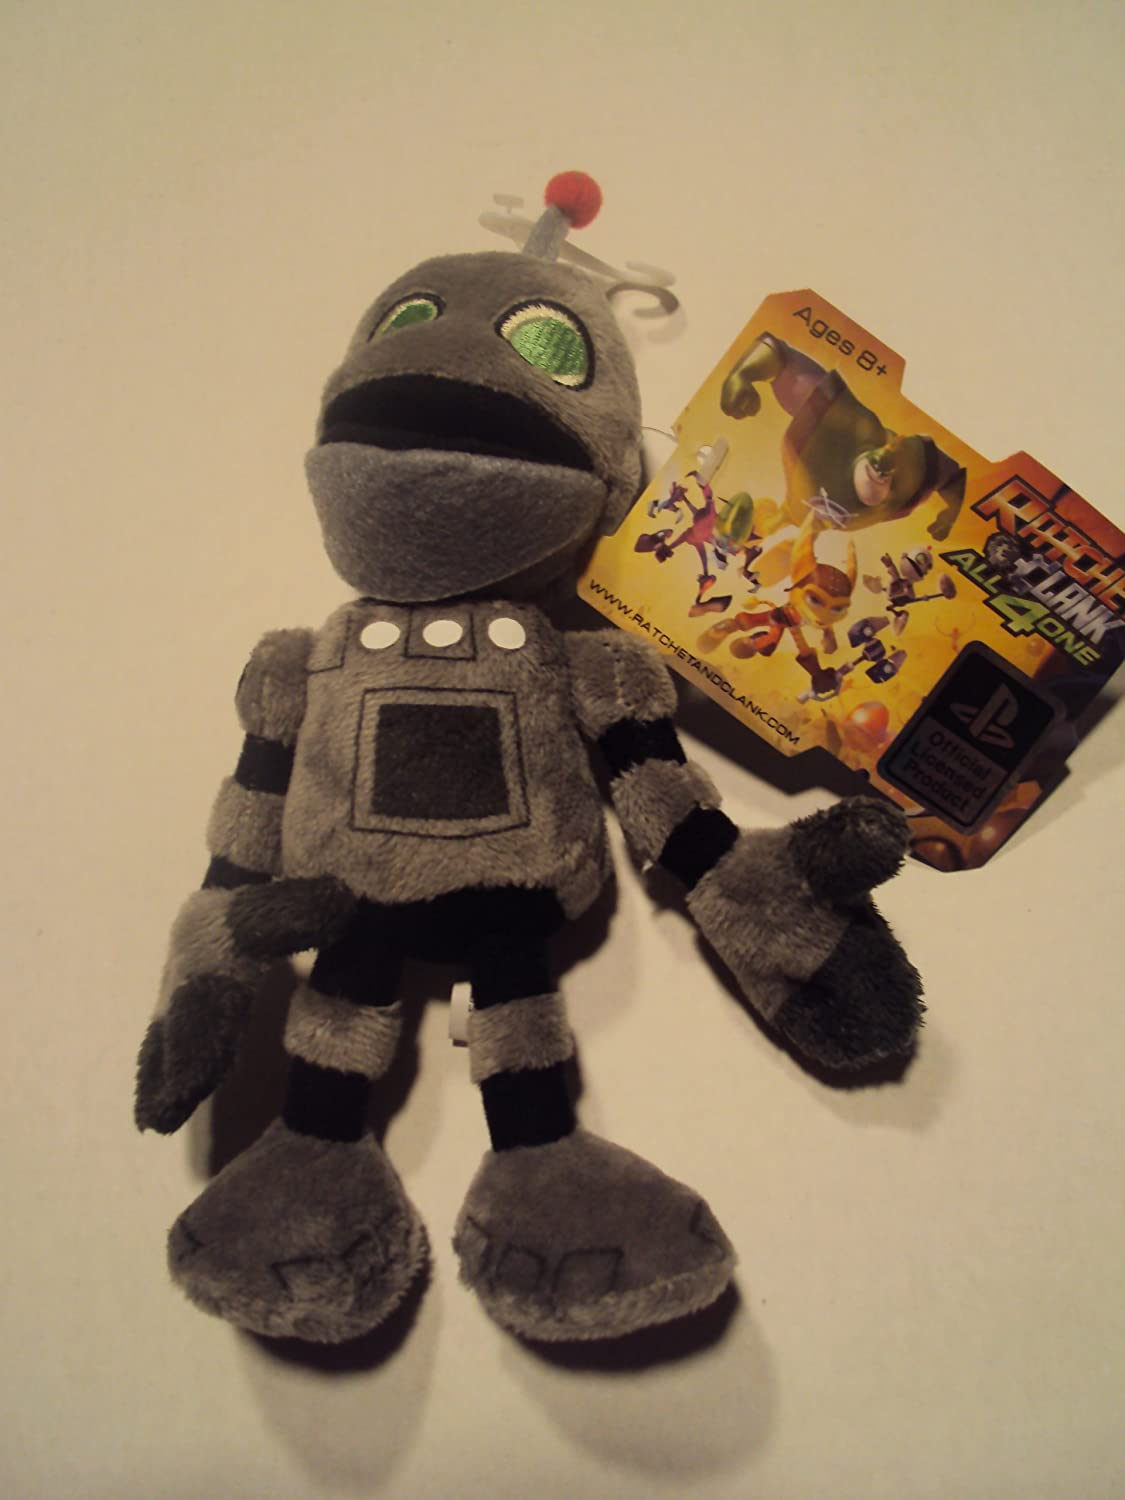 Ratchet & Clank All 4 One Plush Series 01 - Clank by Mezco: Amazon ...